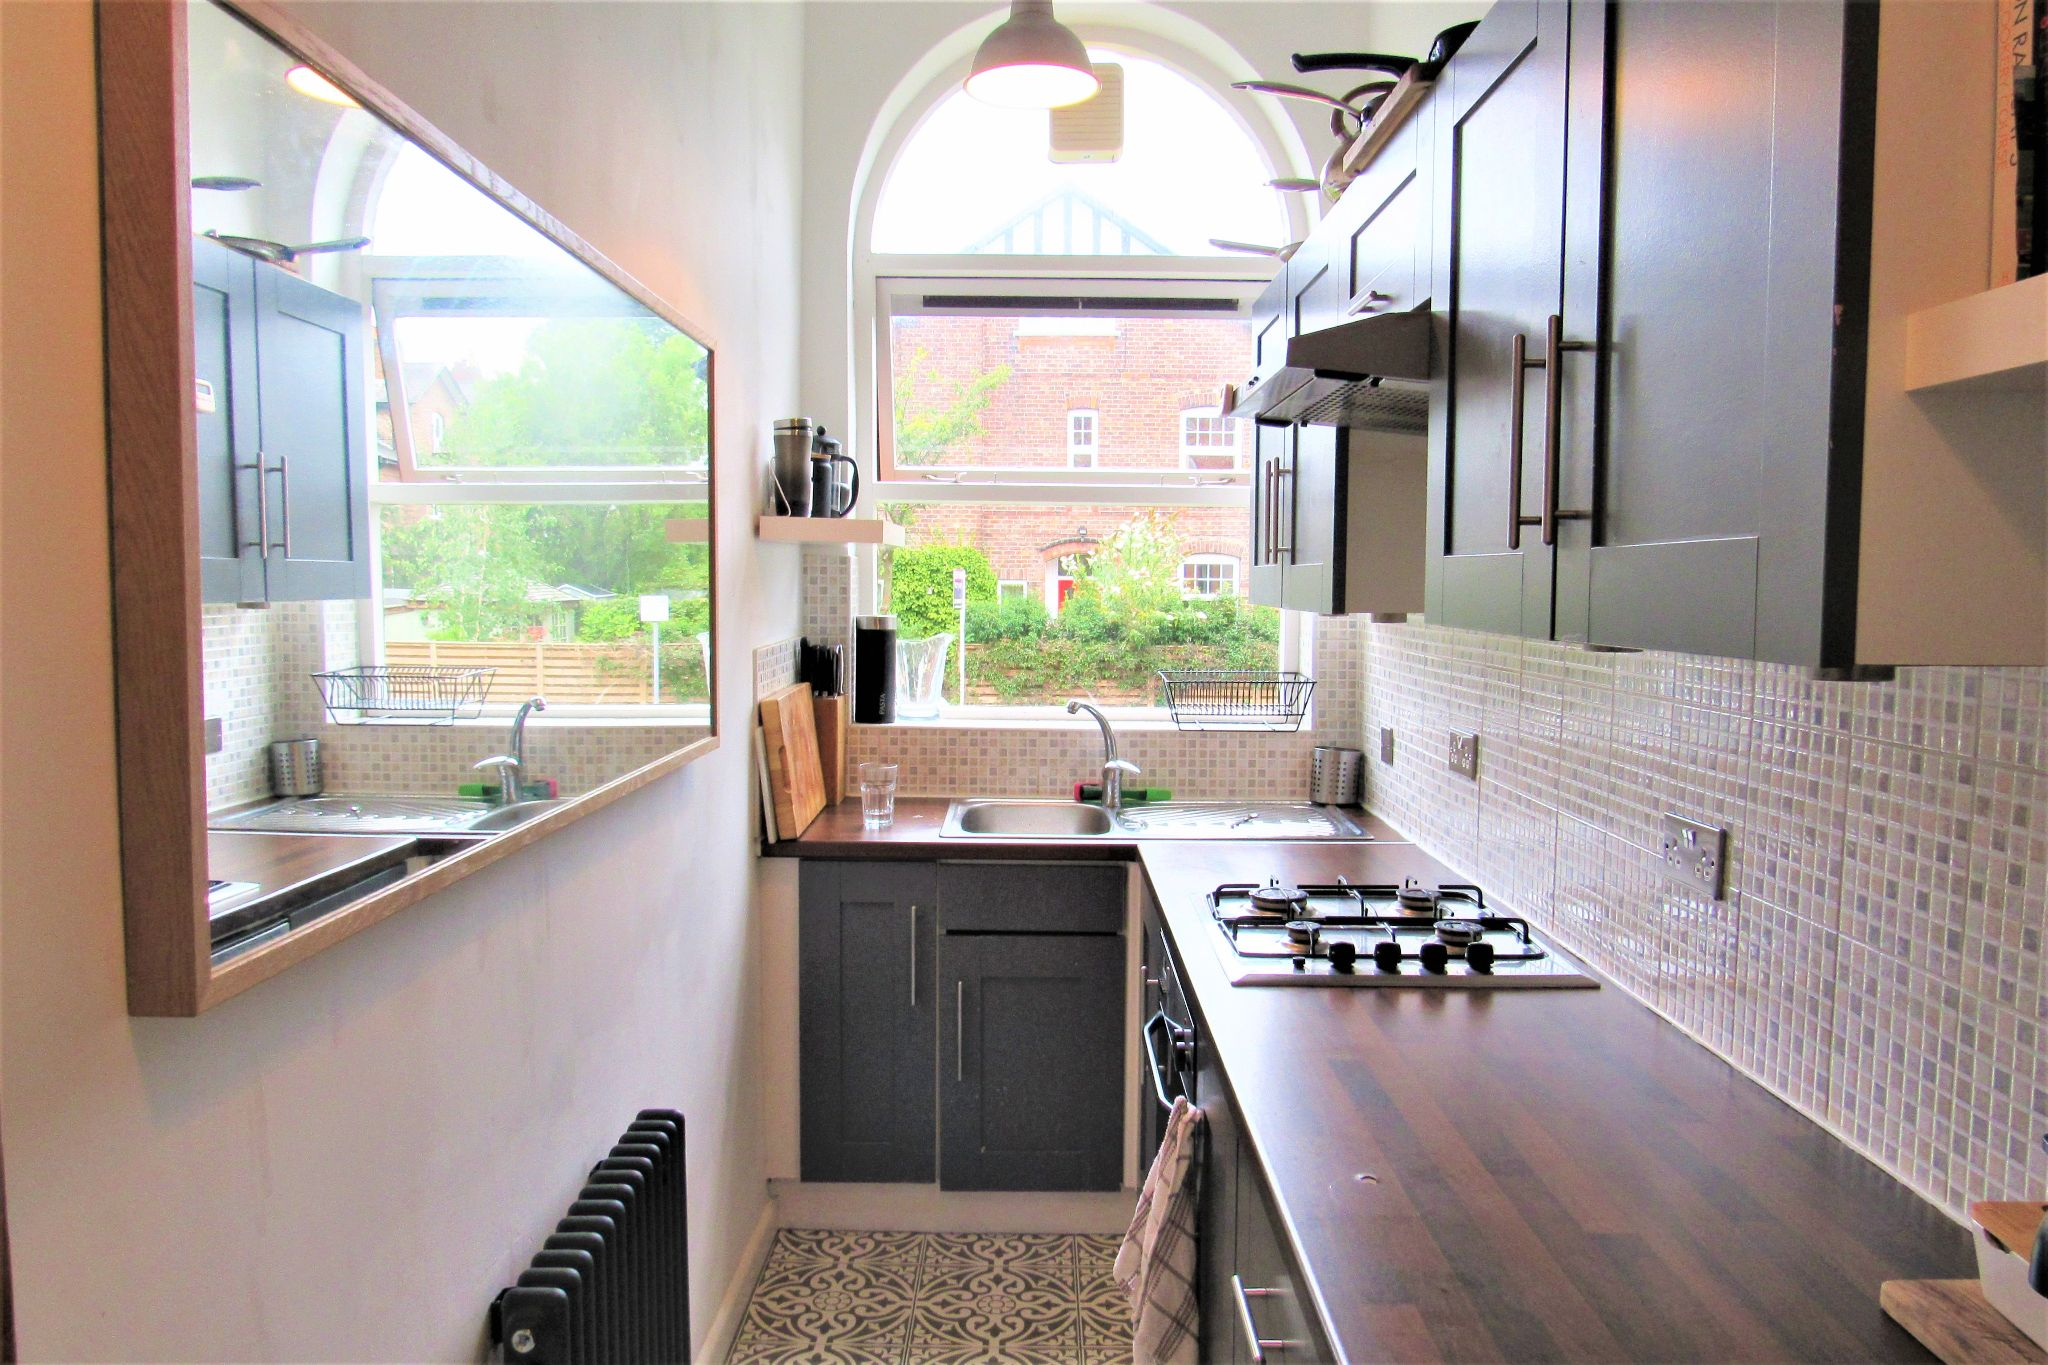 1 bedroom apartment flat/apartment For Sale in Didsbury - Photograph 5.